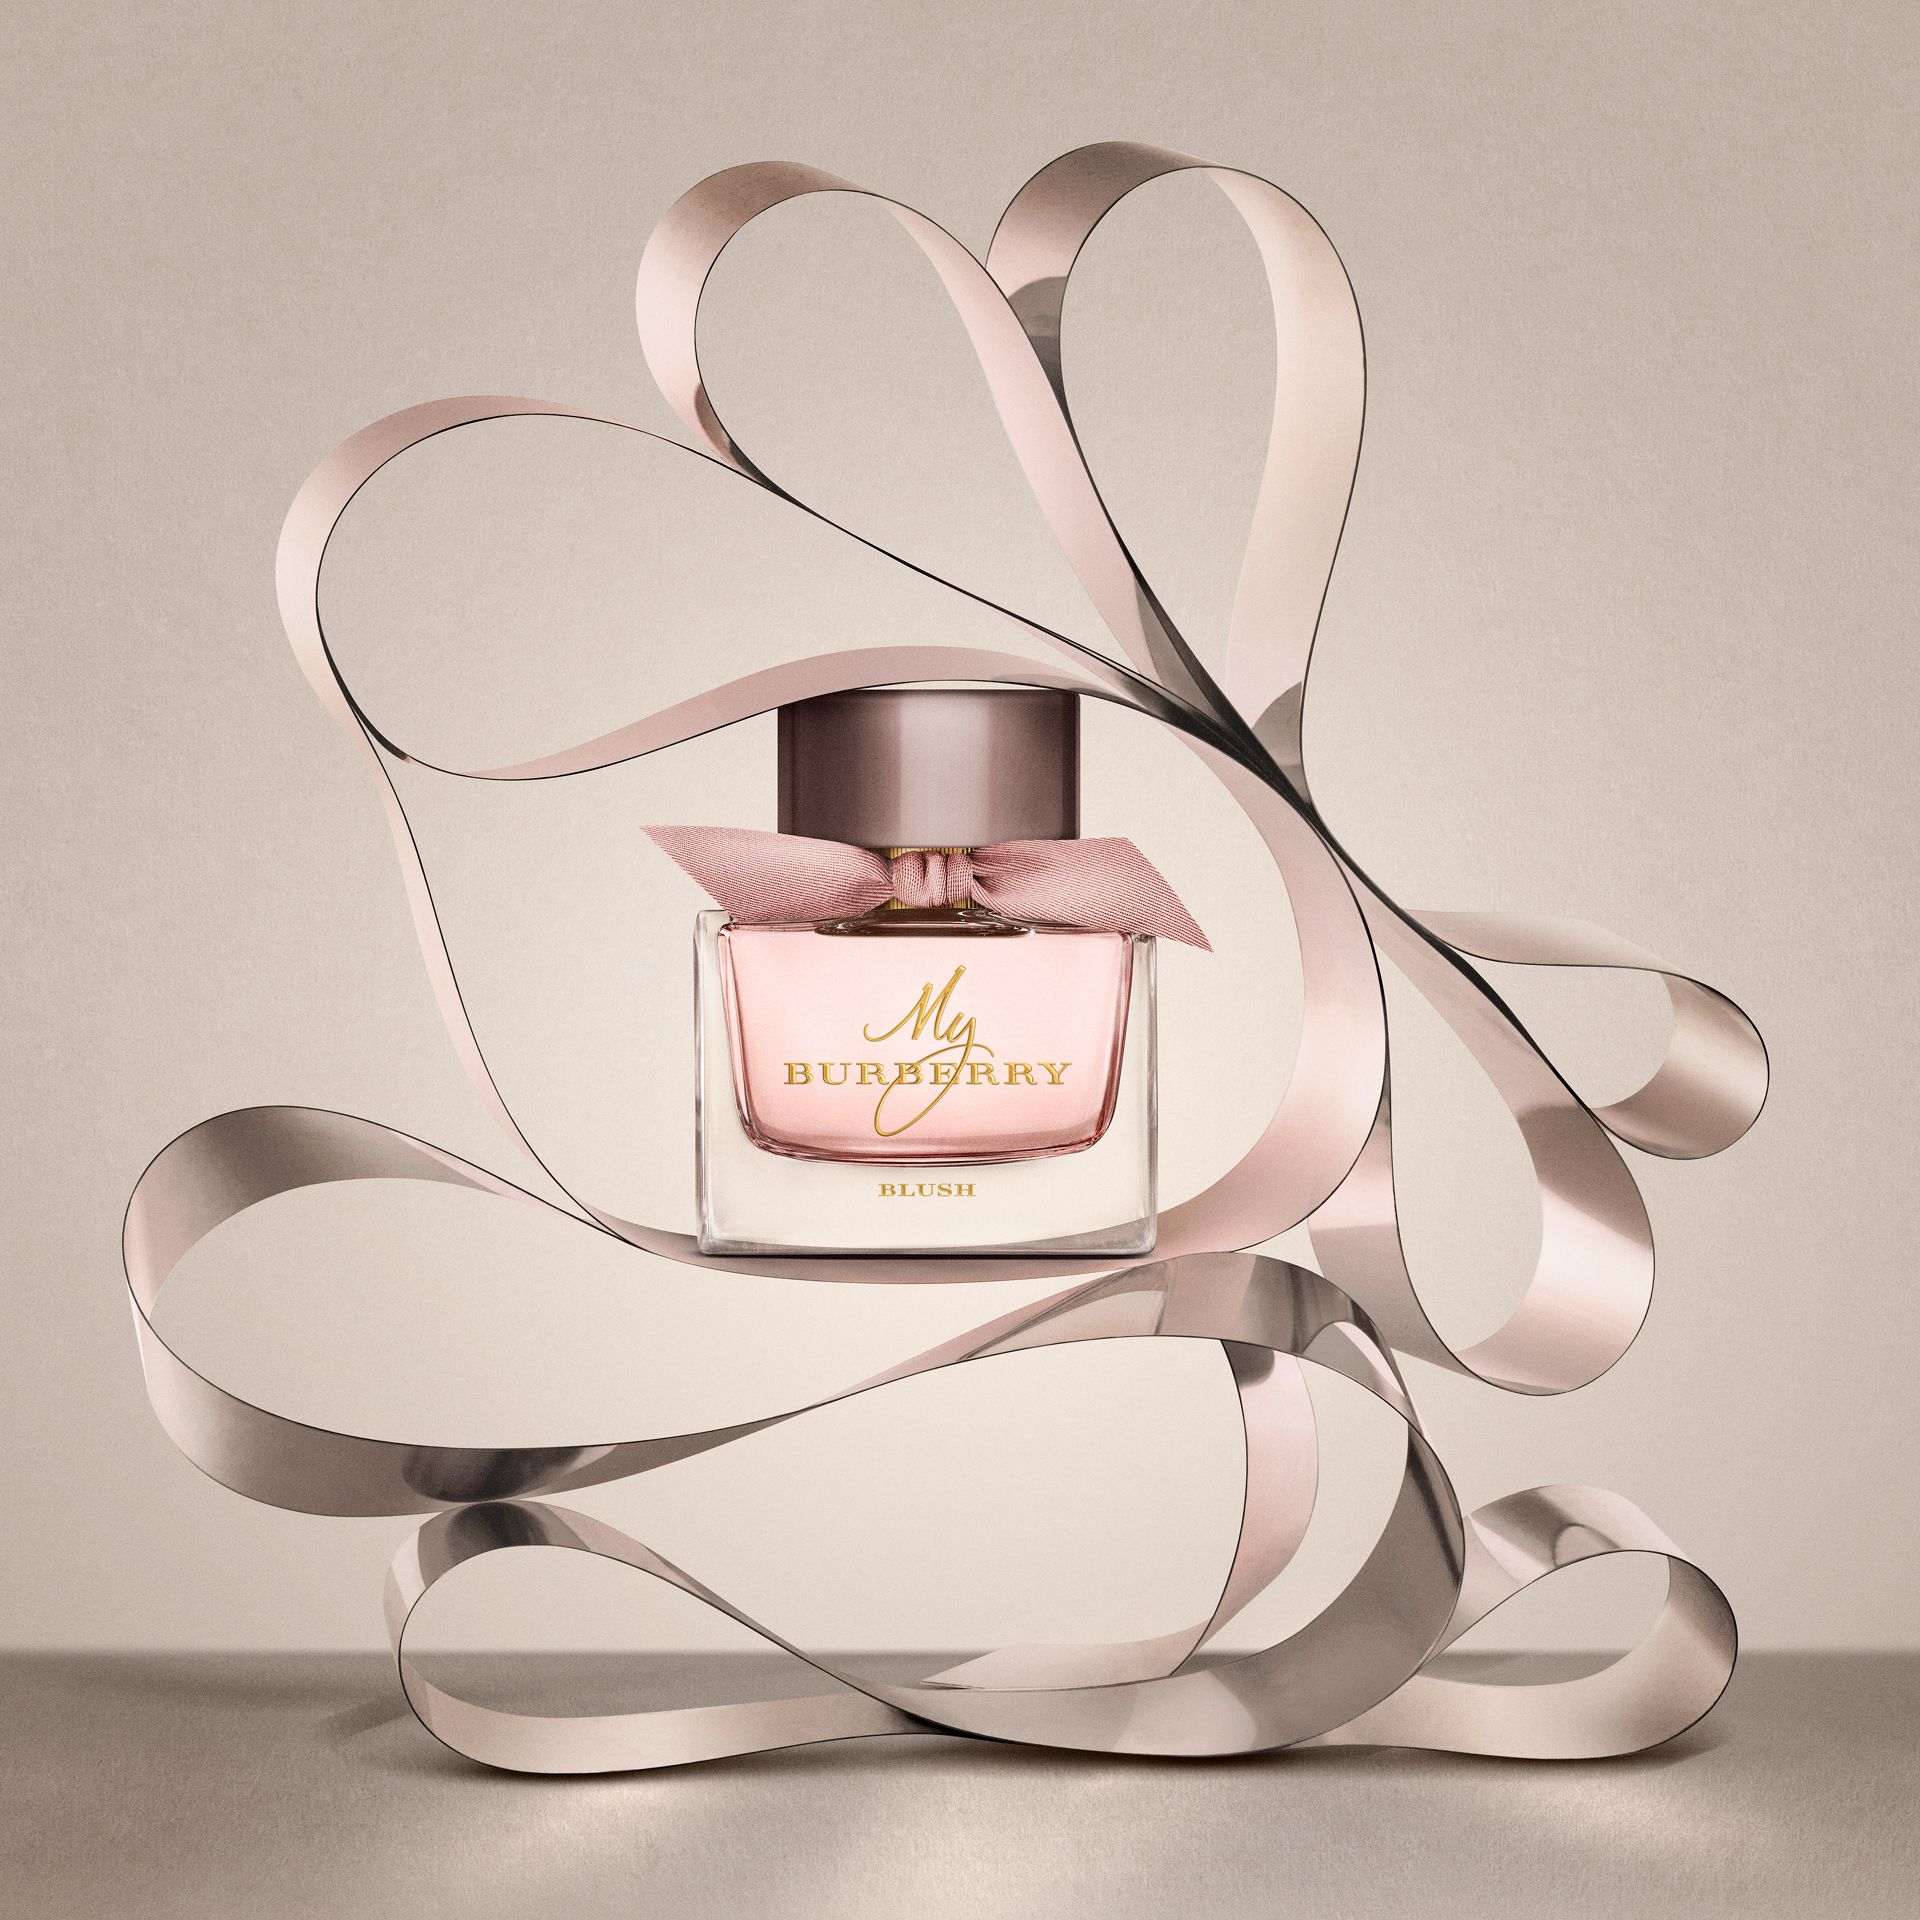 My Burberry Blush Eau de Parfum Festive Luxury Set in No Colour - Women | Burberry - gallery image 1